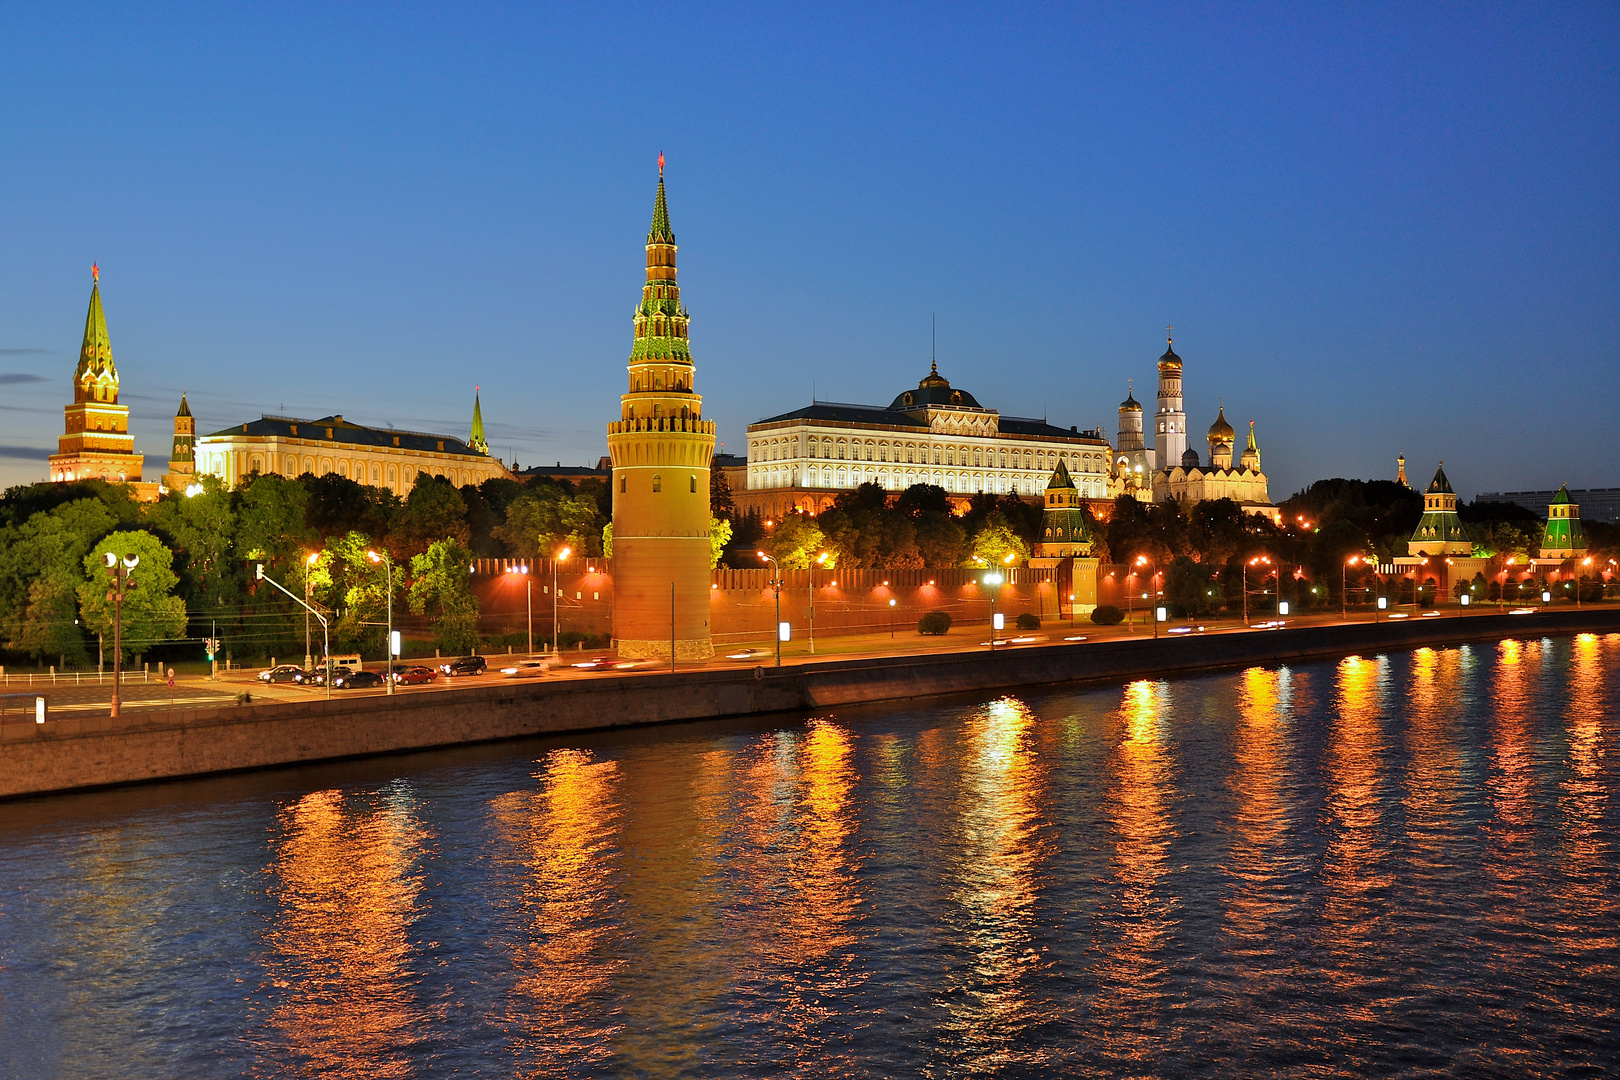 Moscow, Kremlin in the night